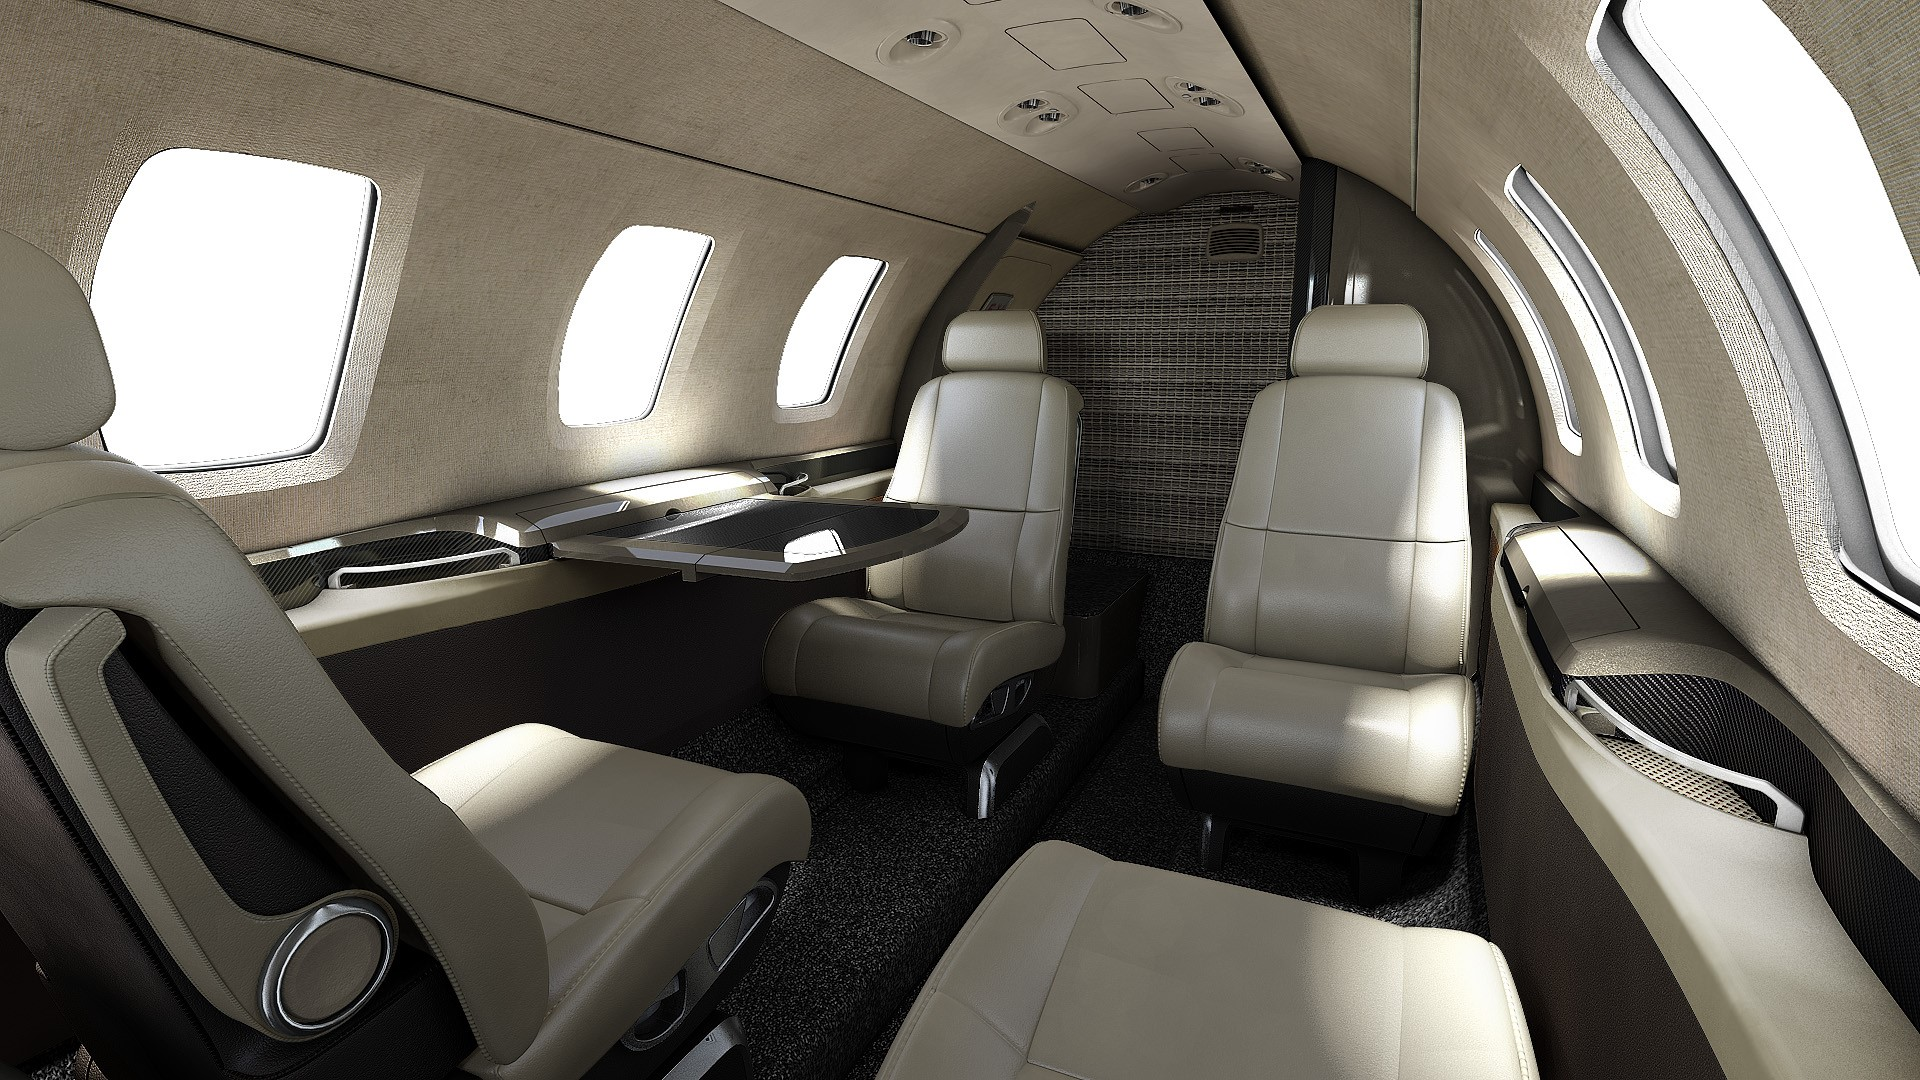 Cabine Cessna Citation M2